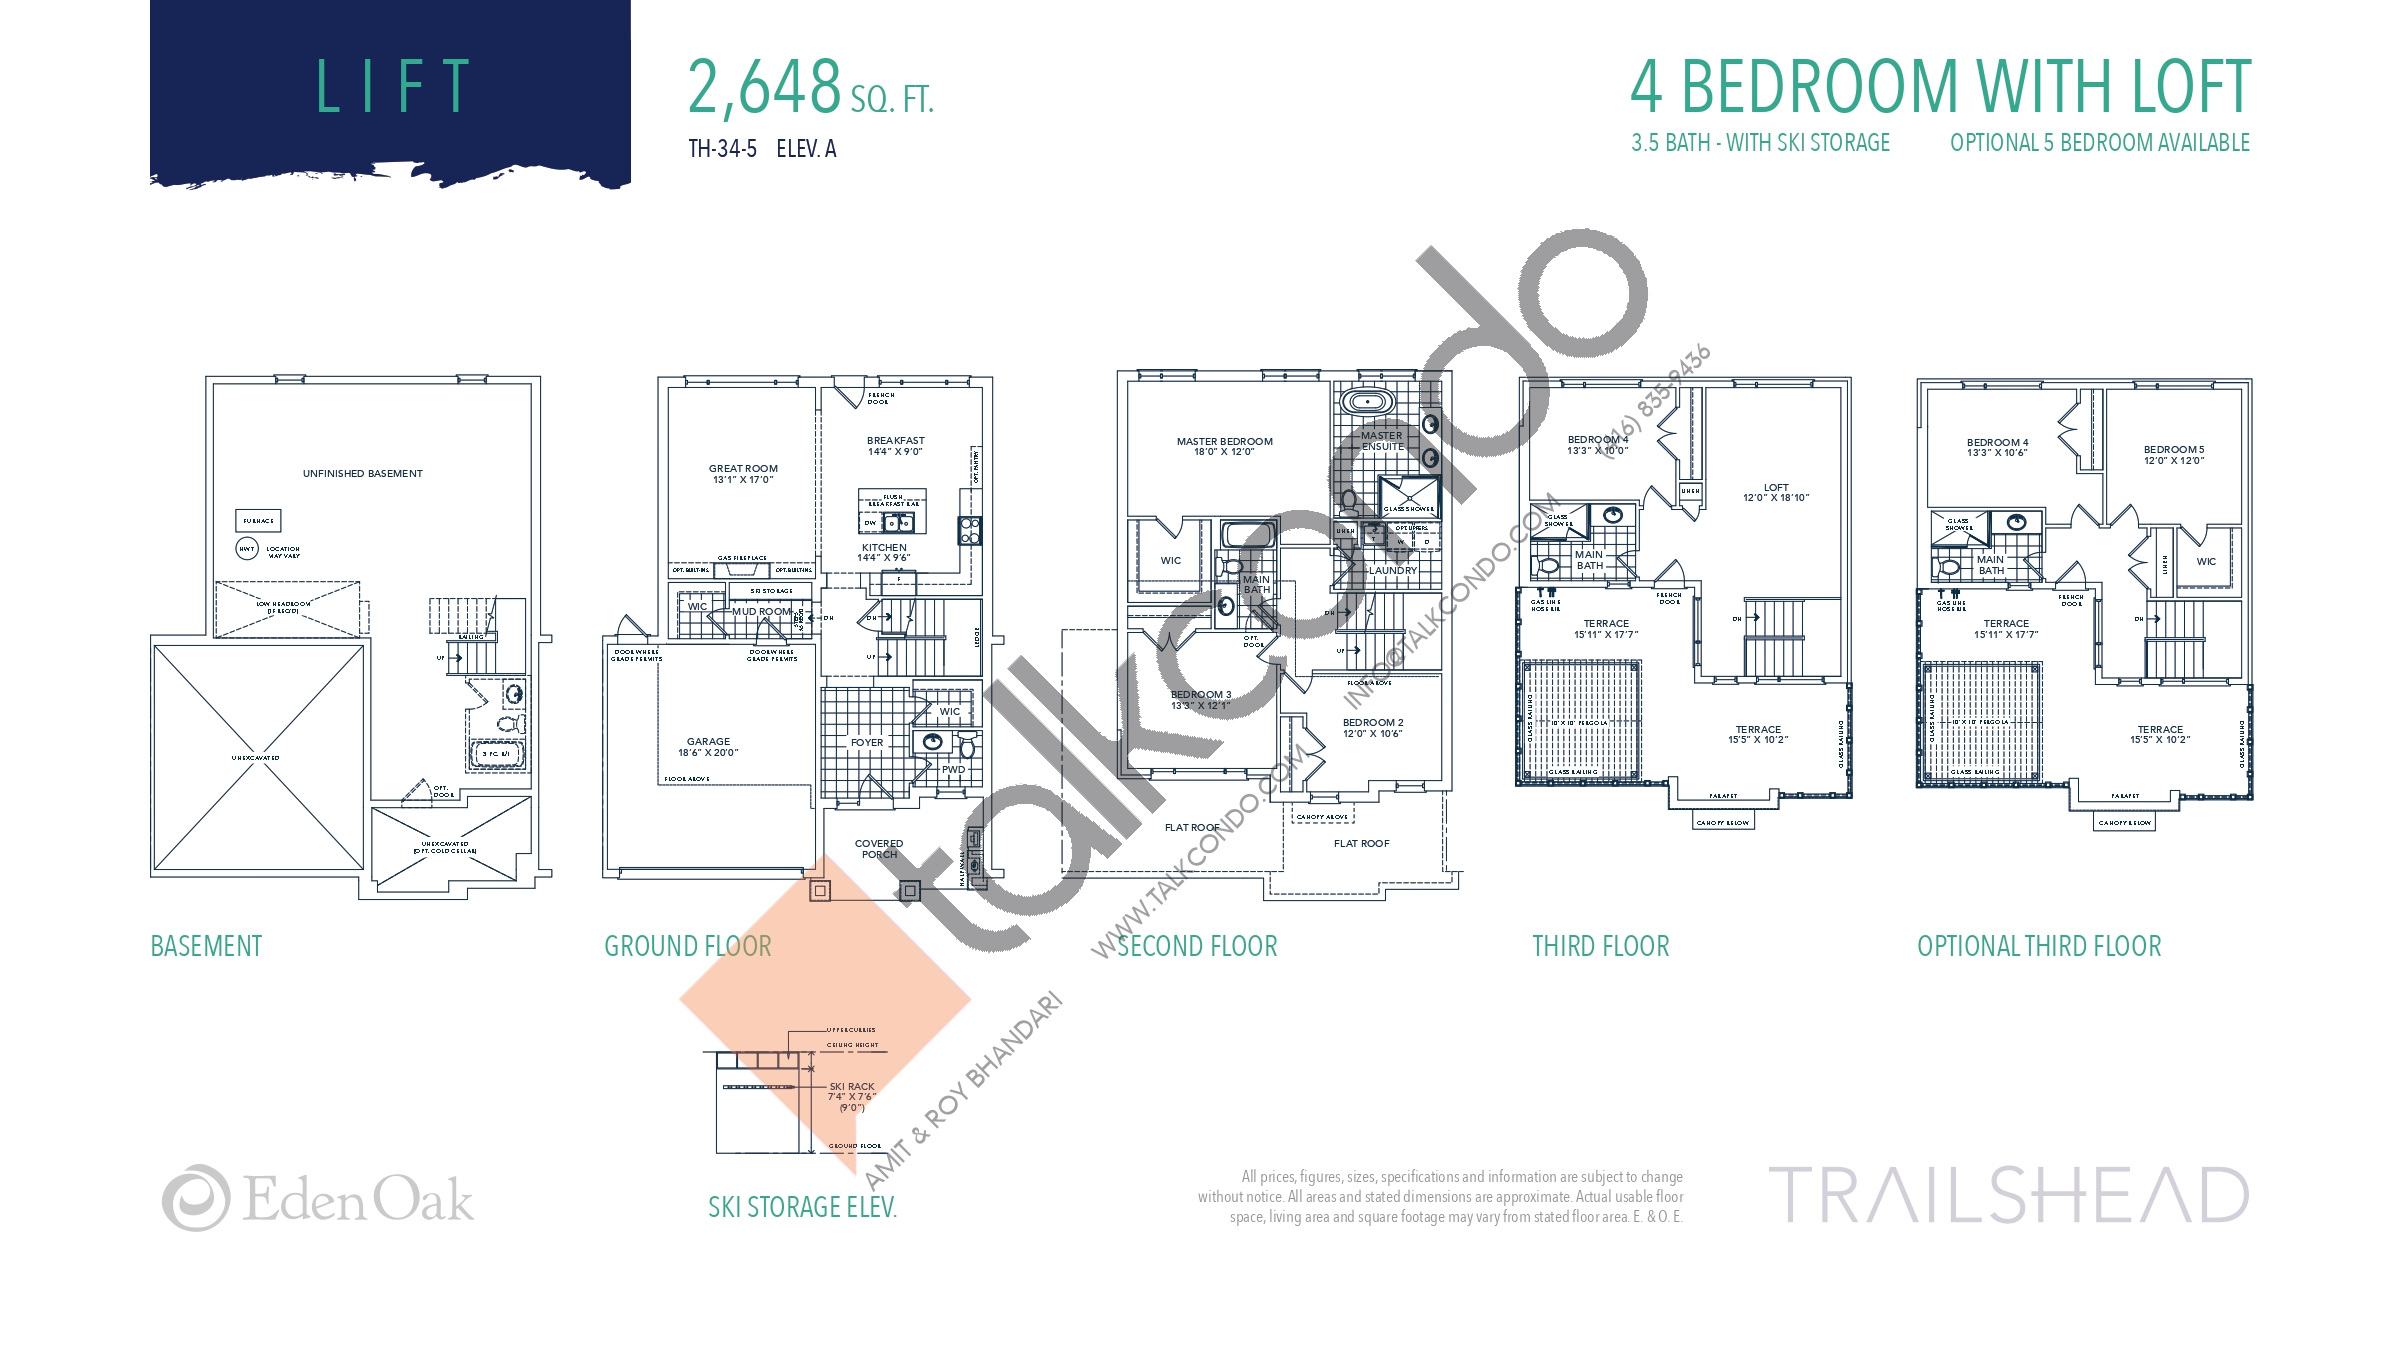 Lift (1/2) Floor Plan at Trailshead Towns - 2648 sq.ft